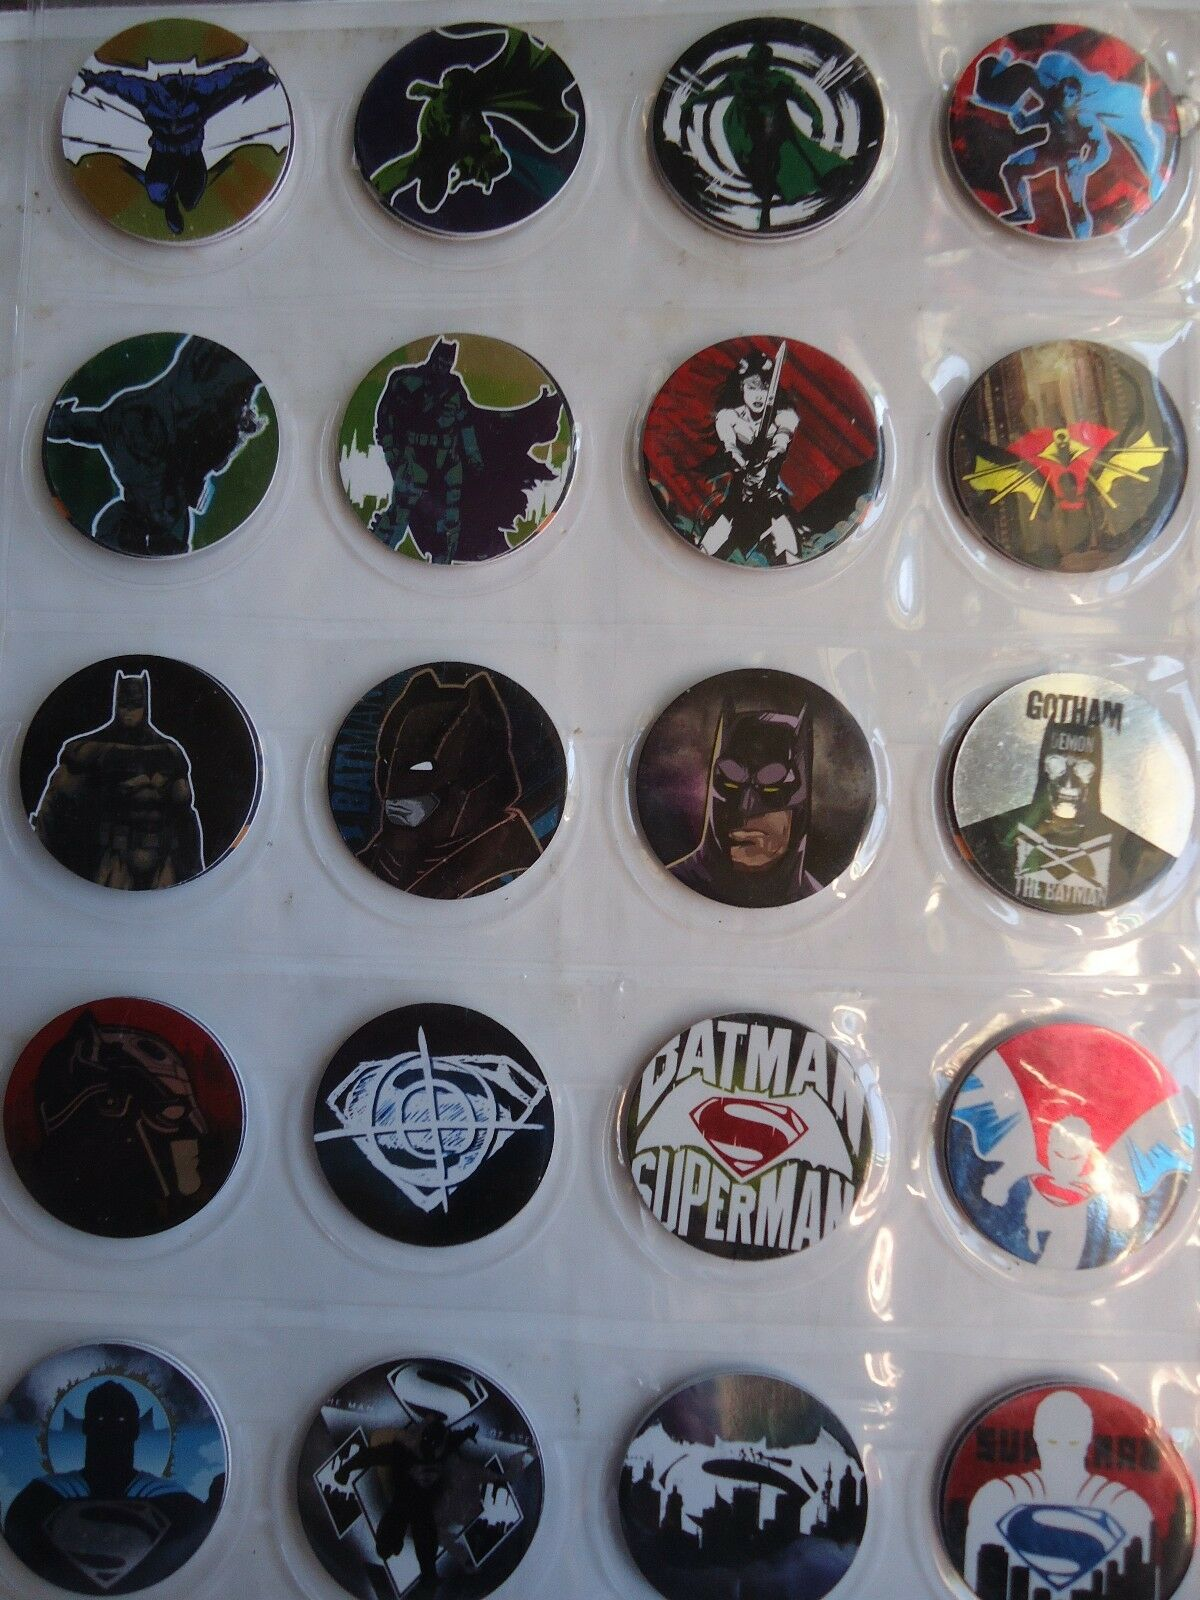 COMPLETE COLLECTION OF 150 POGS TAZOS EDITION BATMAN VS SUPERMAN